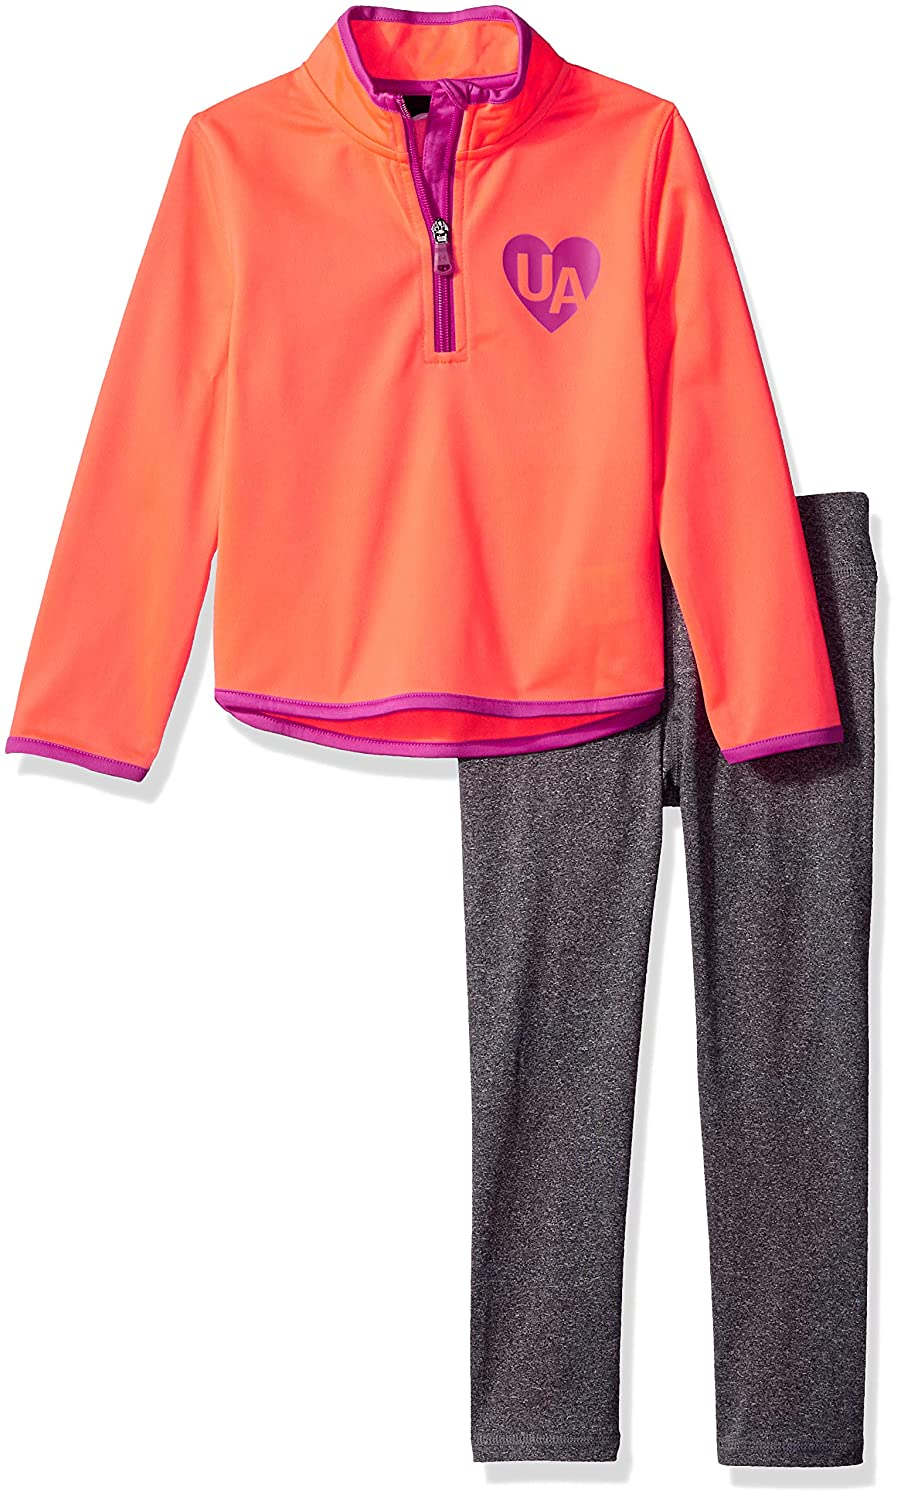 Under Armour Girls' Little Track Jacket and Pant Set